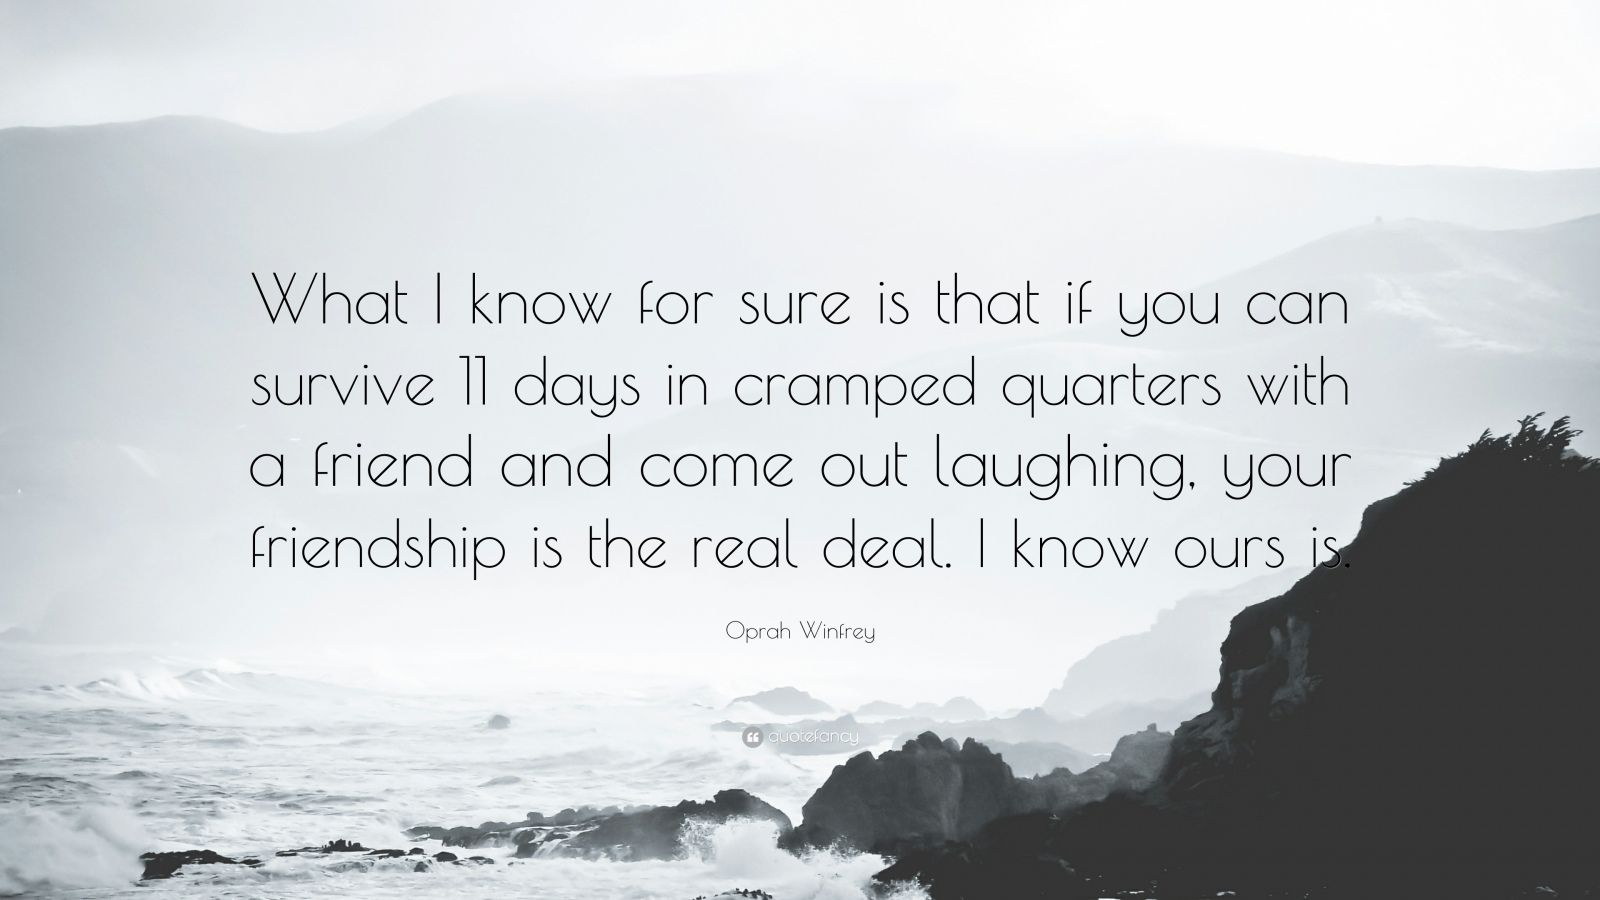 """Oprah Winfrey Quote: """"What I know for sure is that if you can survive 11 days in cramped quarters with a friend and come out laughing, your friendship is the real deal. I know ours is."""""""